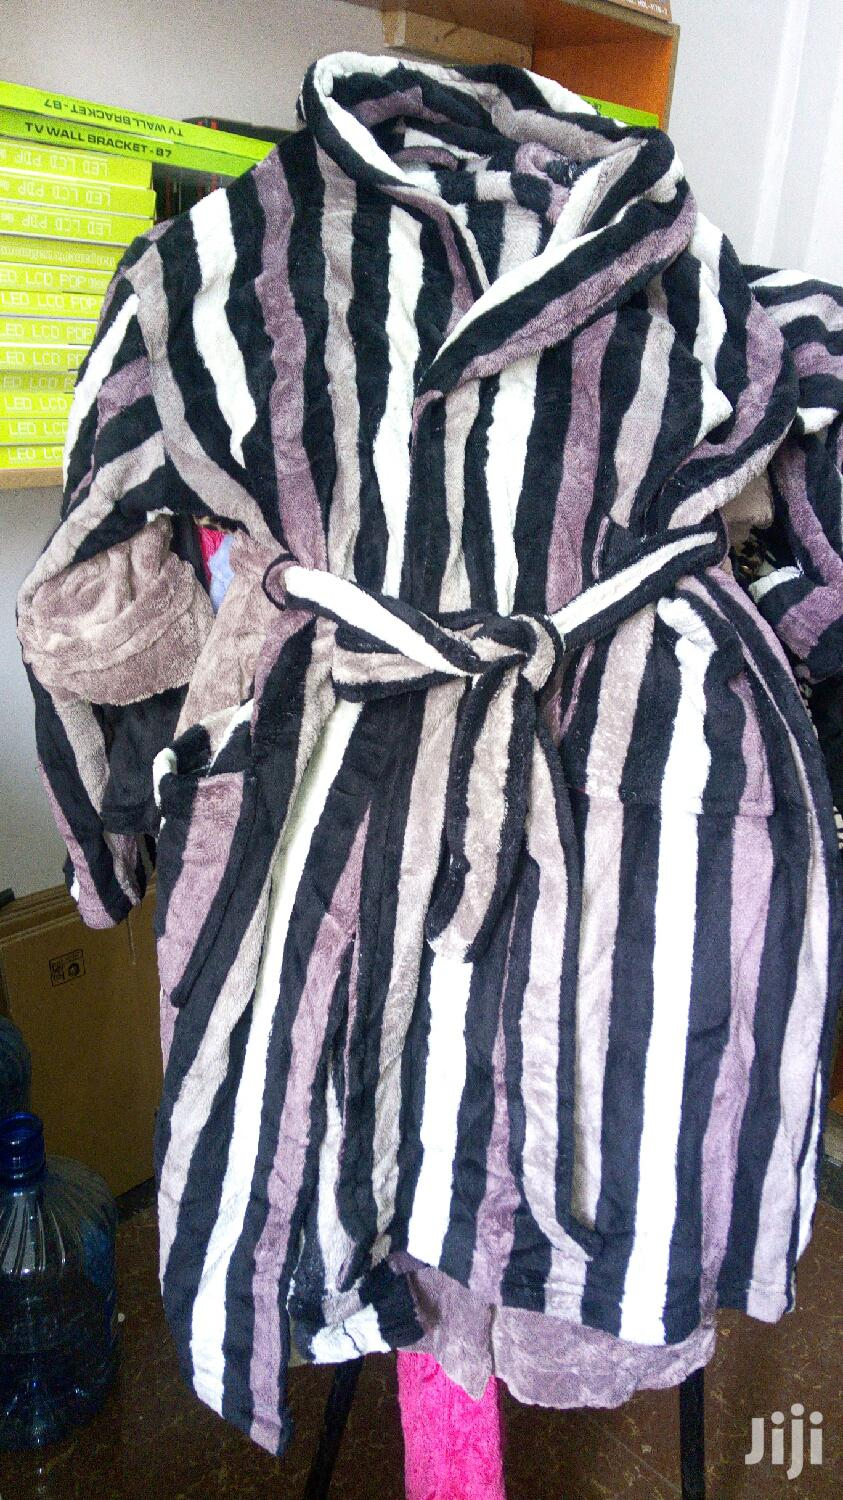 Adult Bathing Robes/Towels | Clothing for sale in Nairobi Central, Nairobi, Kenya